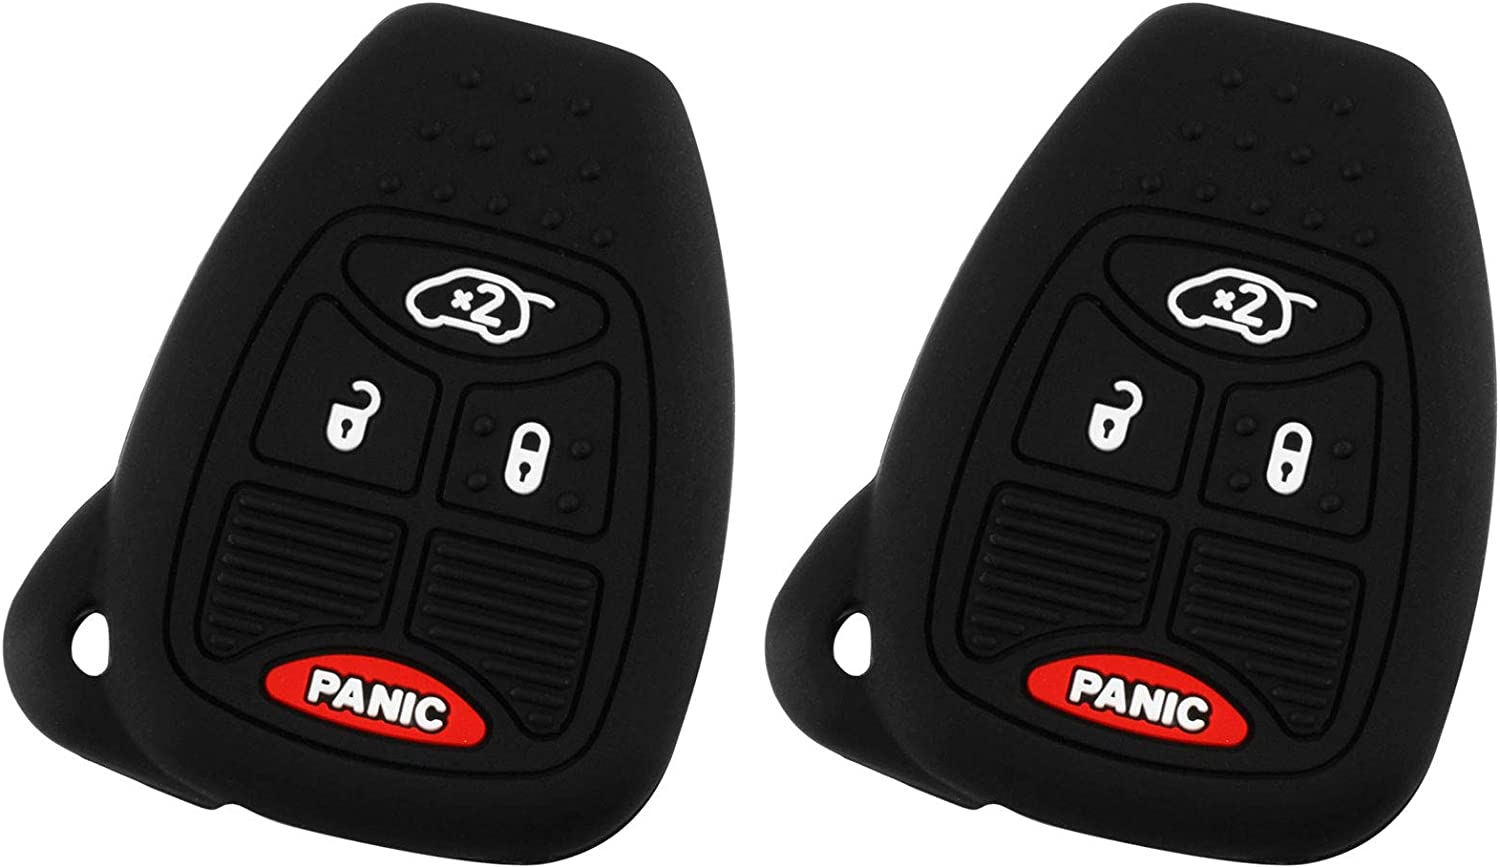 Key Fob Keyless Entry Remote Cover Protector for Jeep Dodge Chrysler 4 Button OHT692427AA, M3N5WY72XX